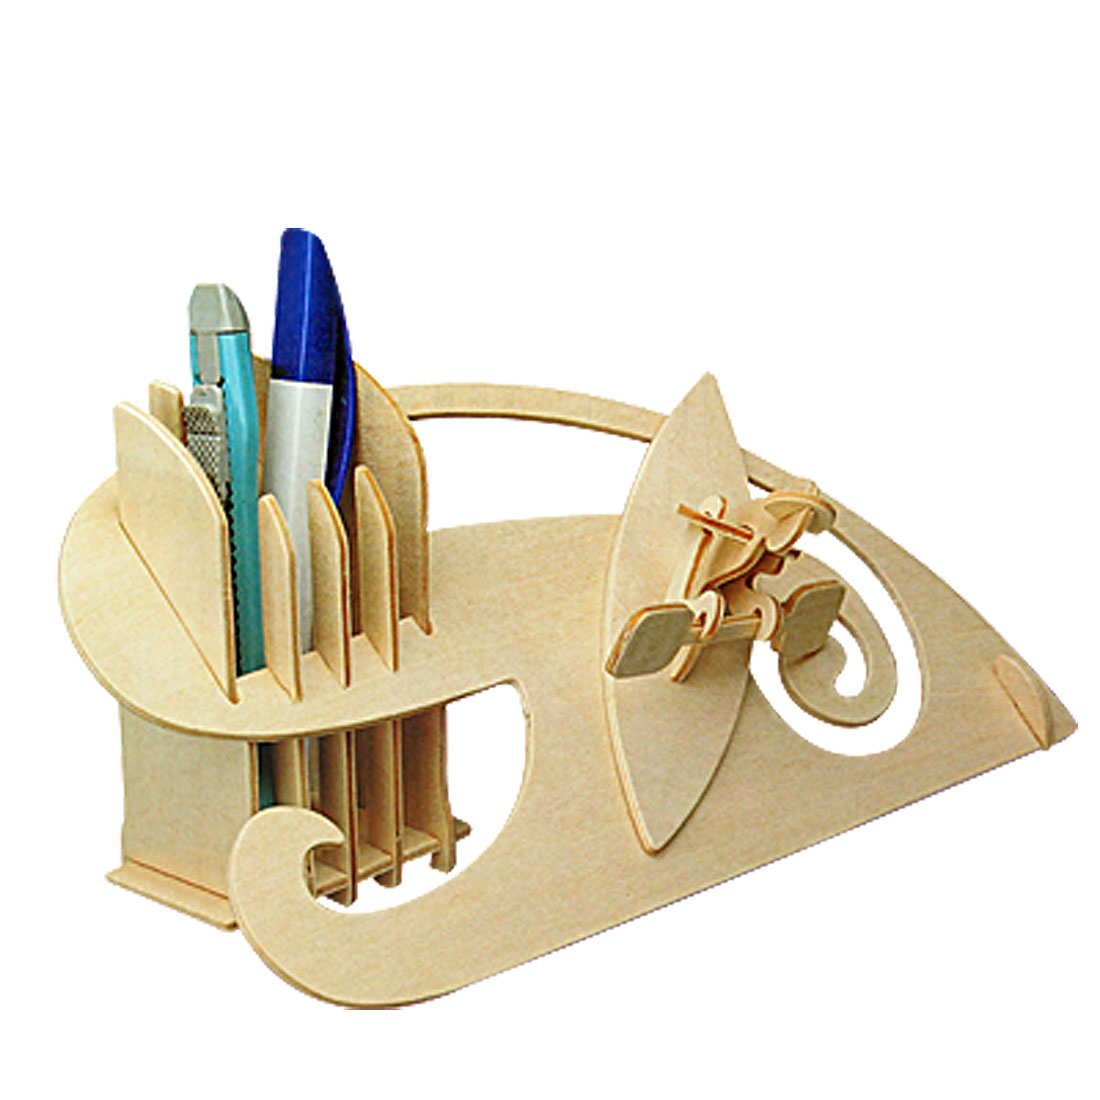 Kayak-Pen-Container-Wooden-Construction-Kit-Holder-New